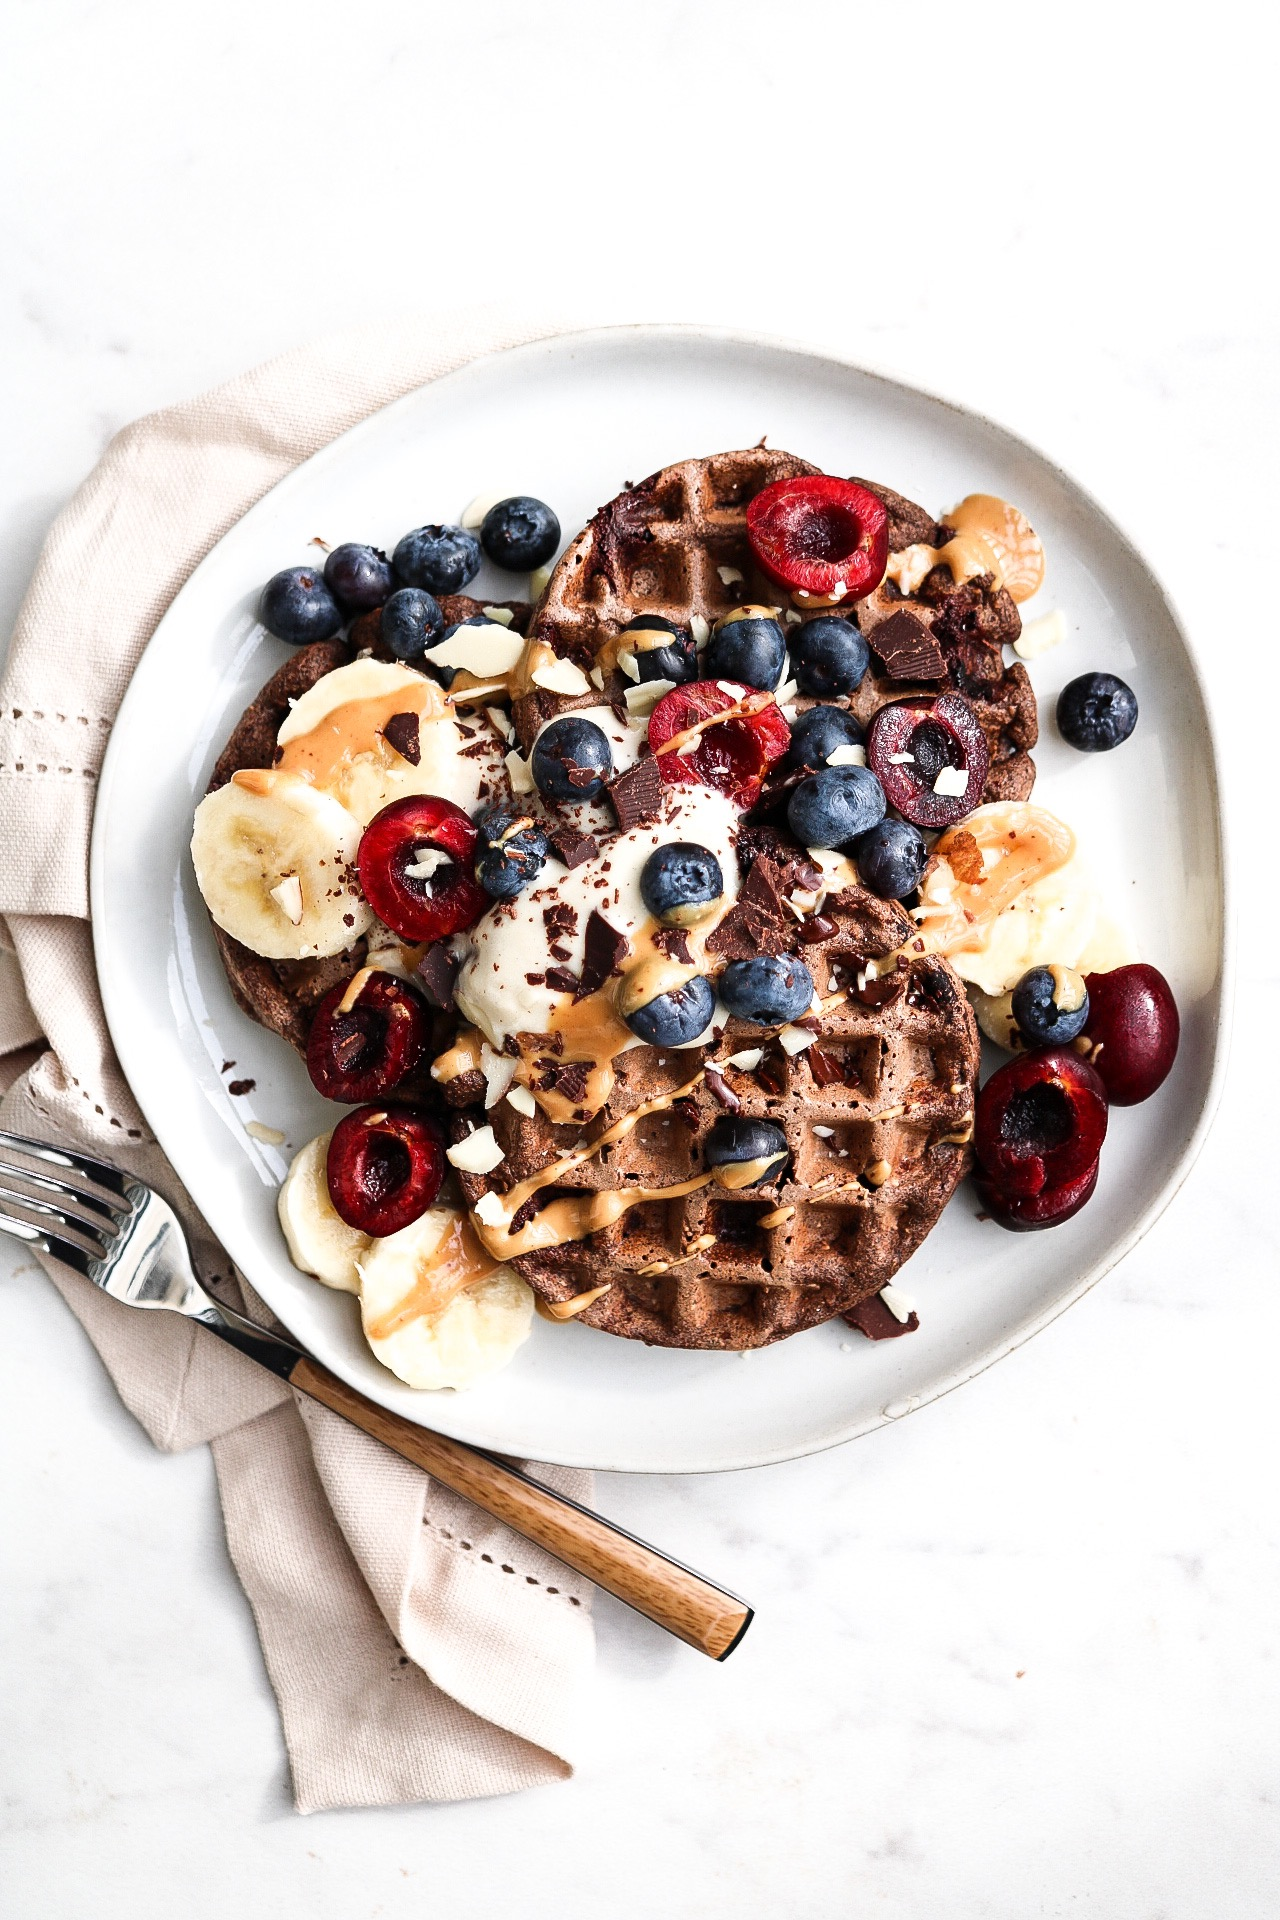 Double Chocolate Buckwheat Waffles  - INGREDIENTS:1/2 cup oats1/2 cup buckwheat flour2 Tbsp cacao powder1 tsp baking powder1 tsp apple cider vinegar1 tsp flaxseed1/2 ripe banana3/4 cup almond milk1-2 Tbsp maple syrup or sweetener of choice1/3 cup chopped Alter Eco dark chocolateINSTRUCTIONS:Blend all of the ingredients together in a food processor - then, allow the batter to sit while you preheat your waffle maker. Fold in your chopped chocolate into the batter before cooking. Put a bit of coconut oil on your waffle maker so that the waffles are easier to take out! Cook according to the waffle maker's instructions.